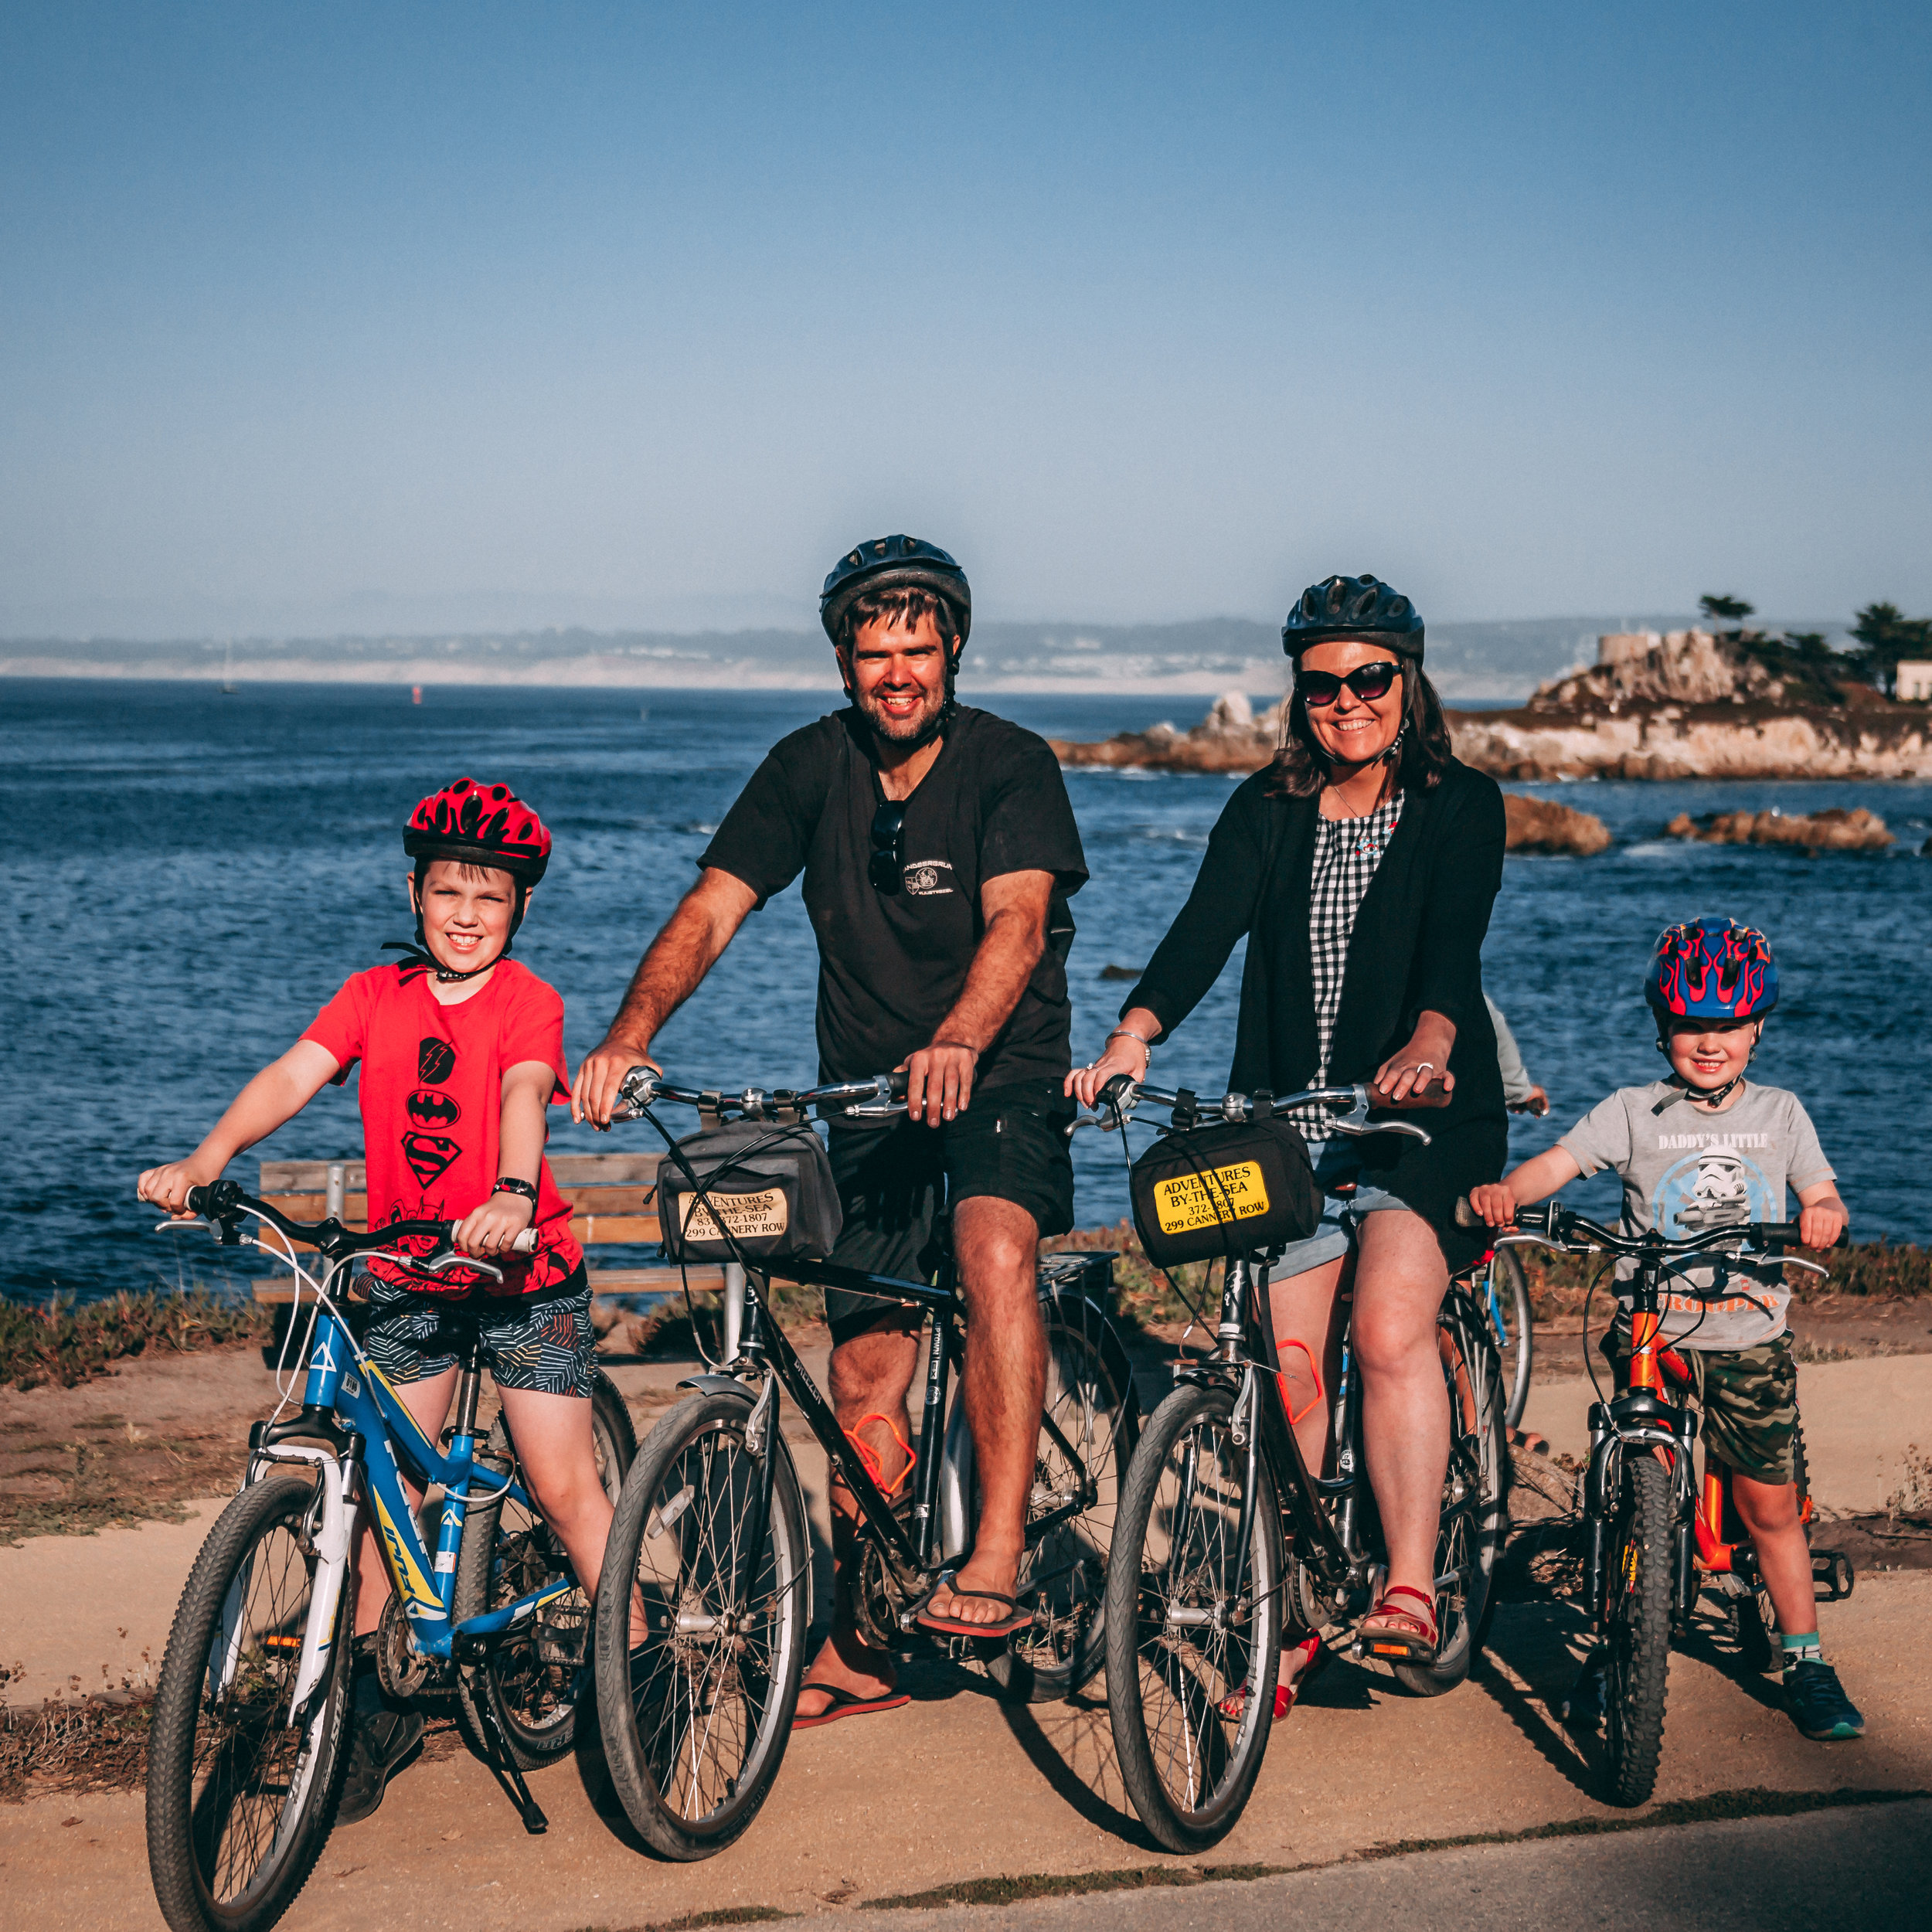 Adventures by the Sea - Whether you're interested in kayaking out in the bay or taking an e-bike around the peninsula, Adventures by the Sea has you covered! Let us show you some of the best sights in the area while tasting some of the finest food around.